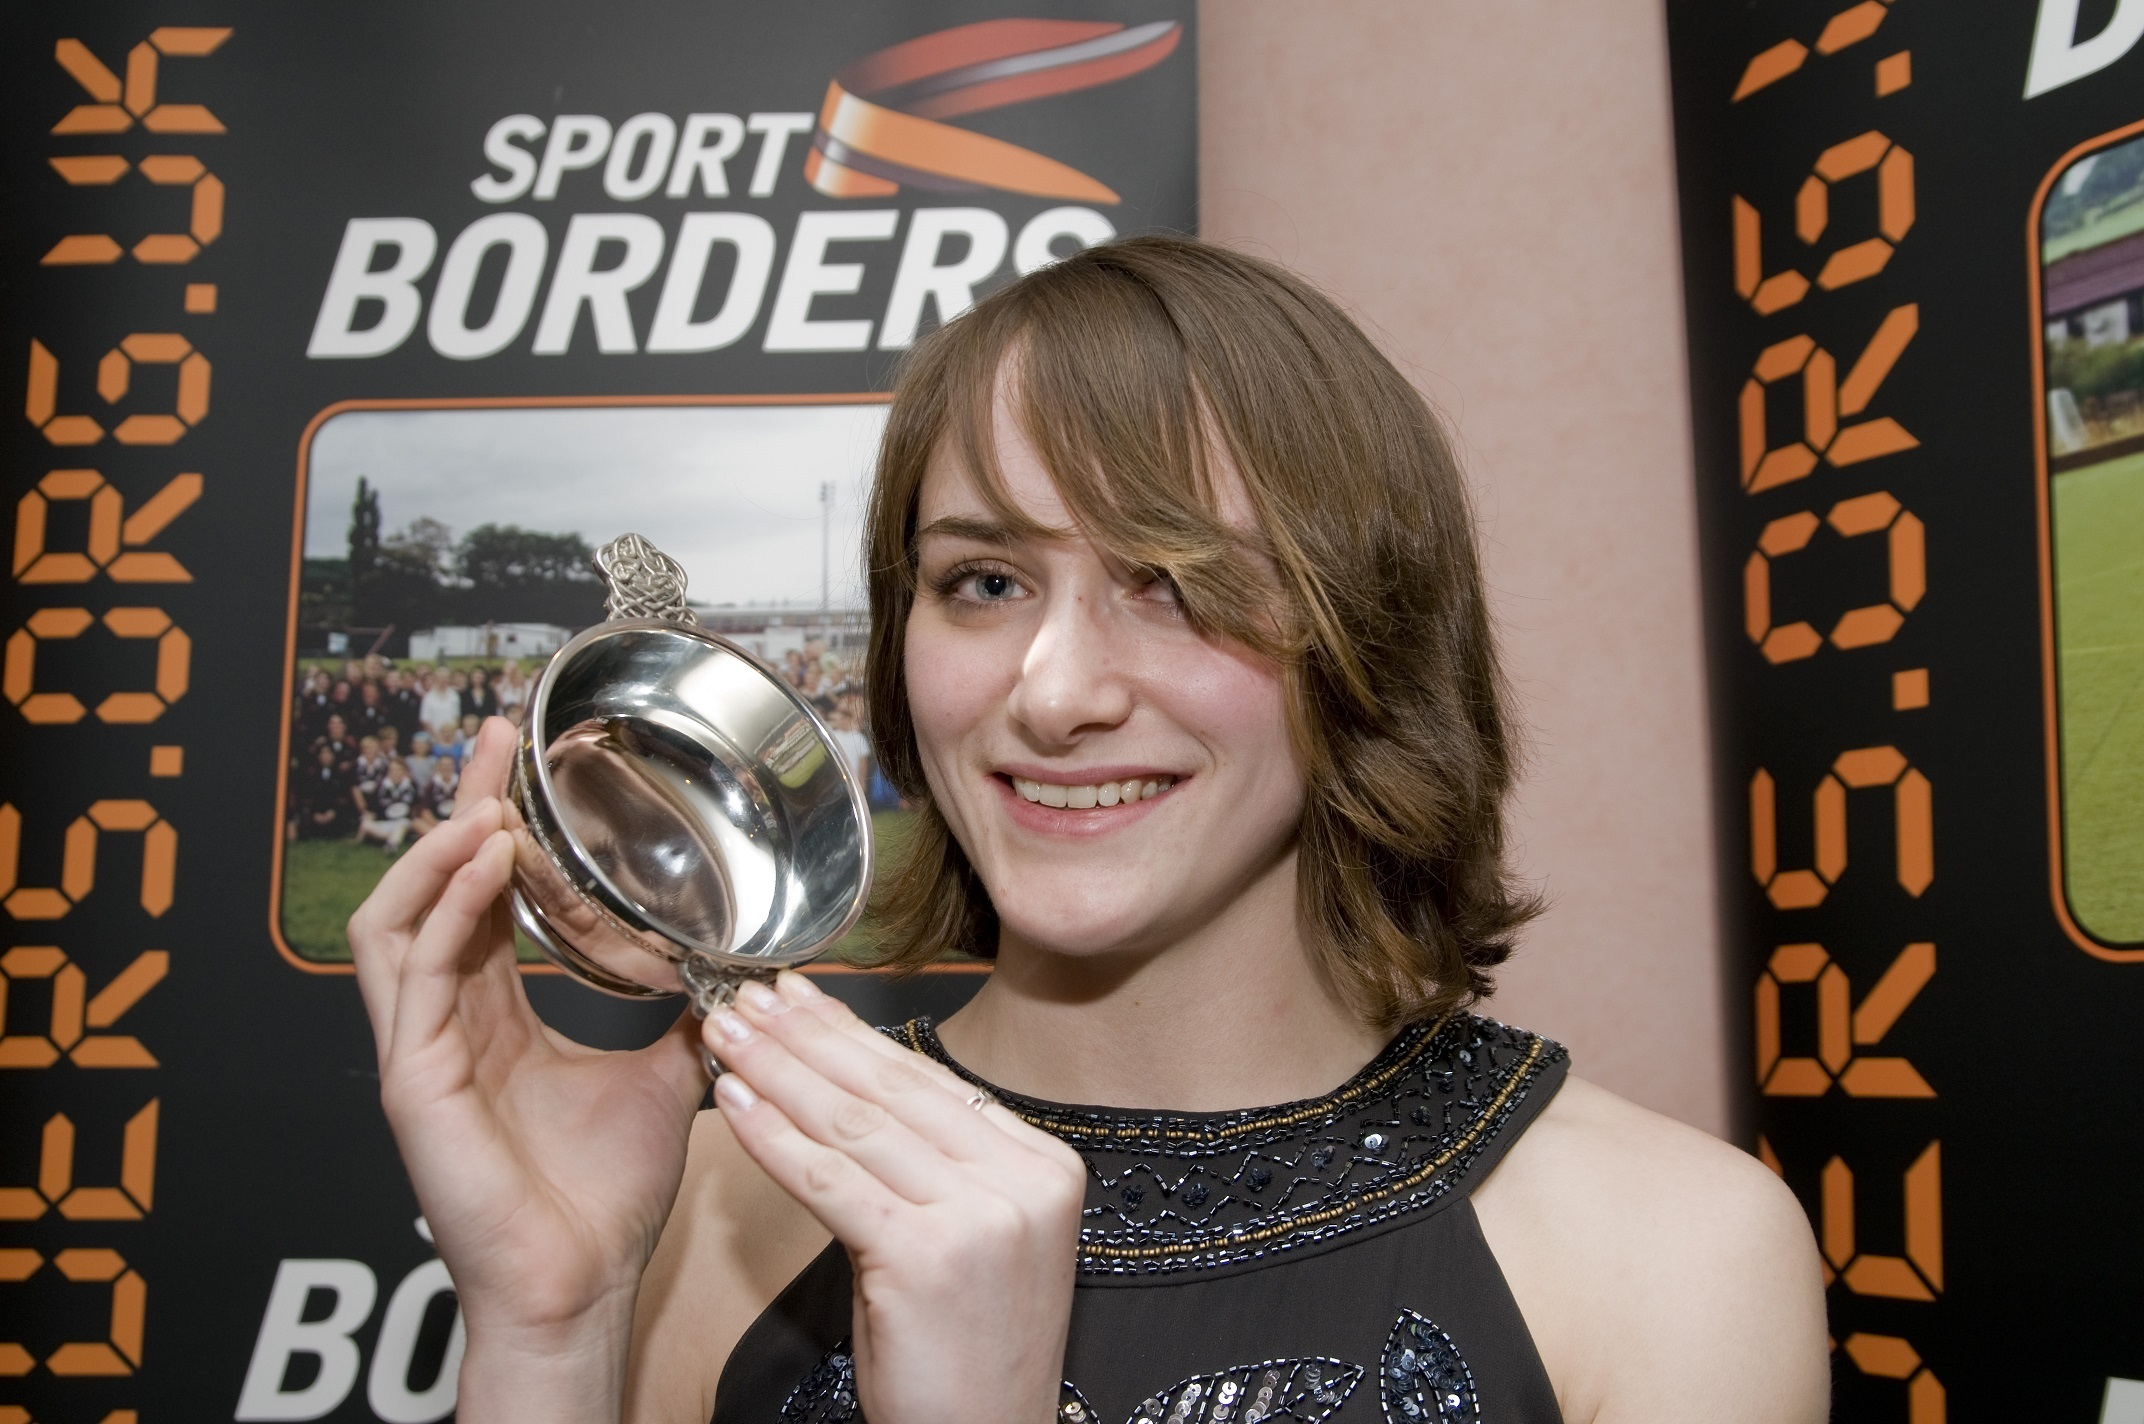 Stacey Downie is still regarded as on eof the top sprinters in Scotland